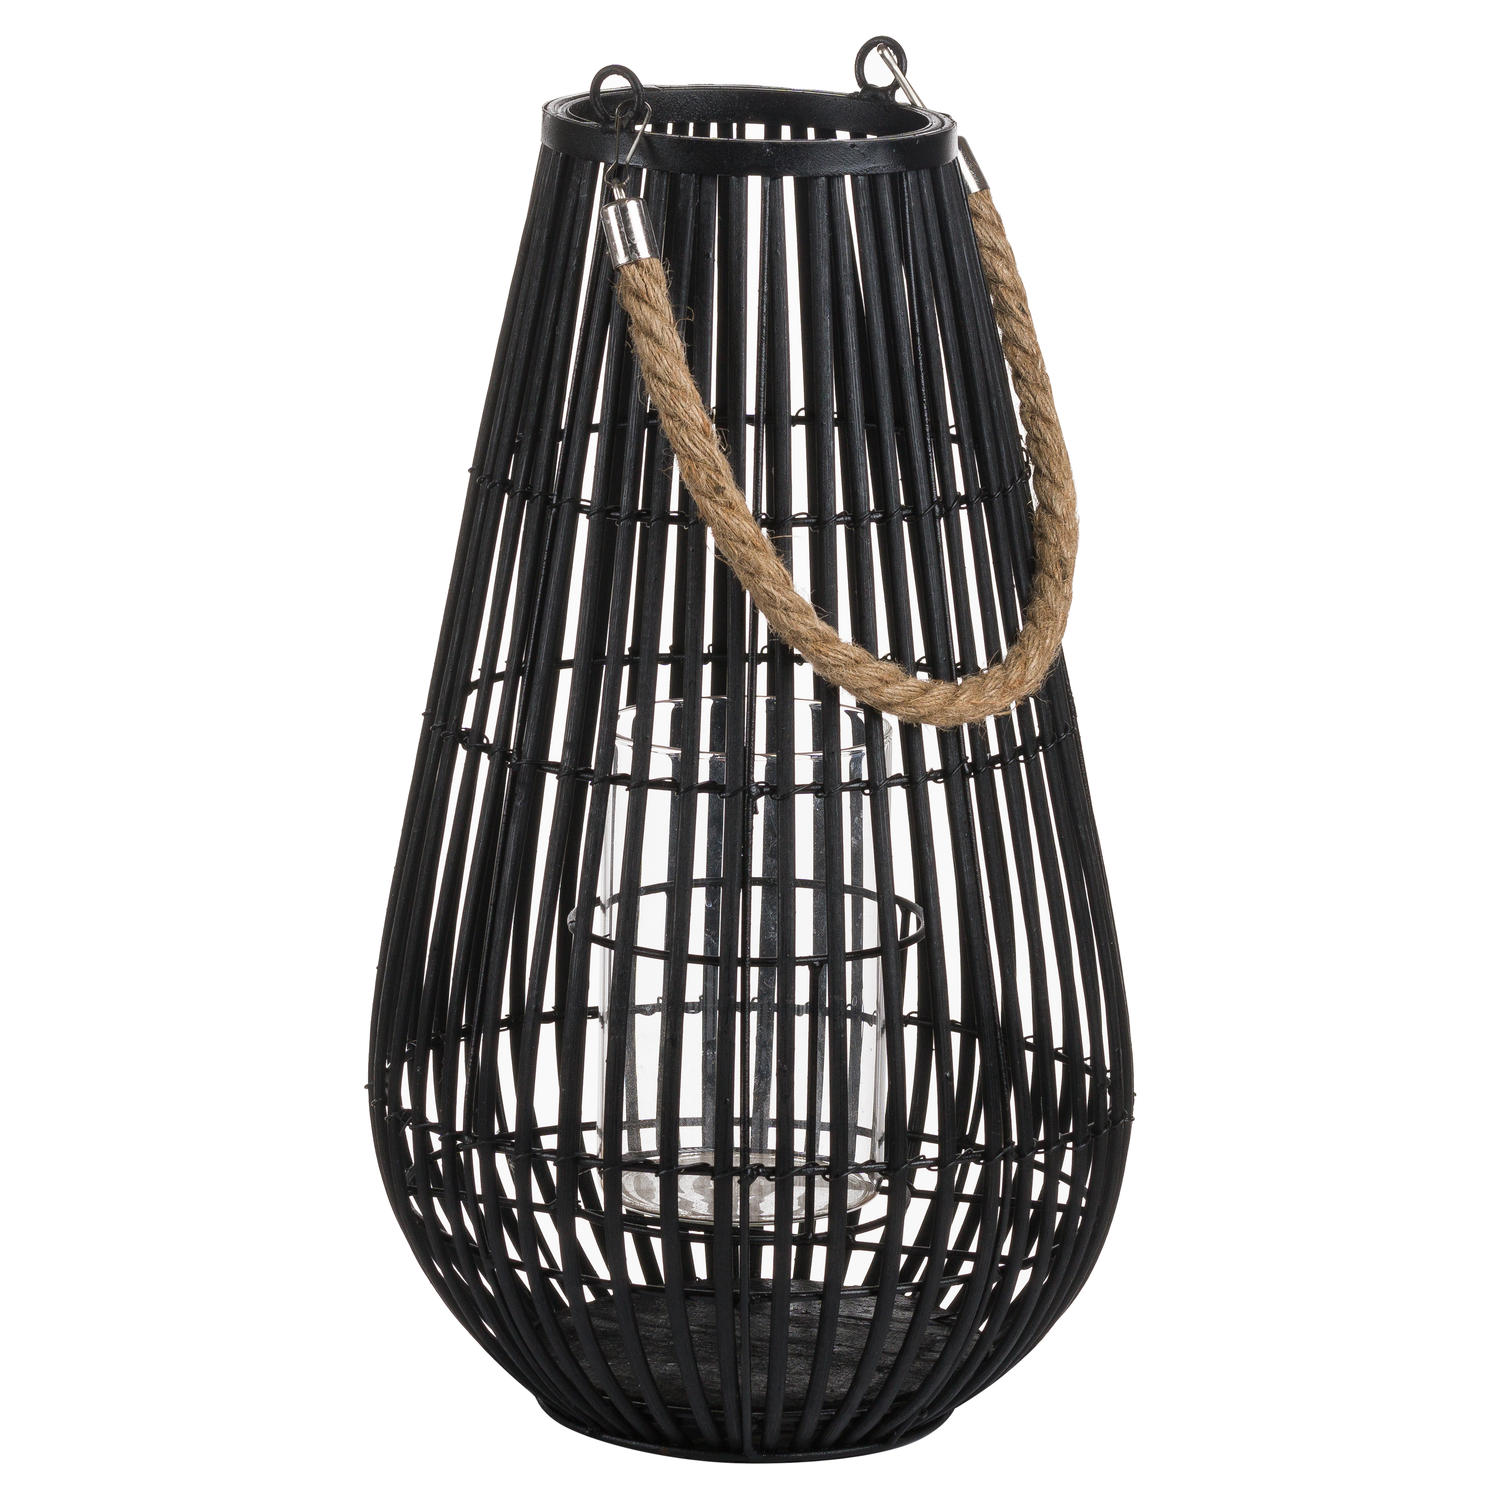 Domed Rattan Lantern With Rope Detail